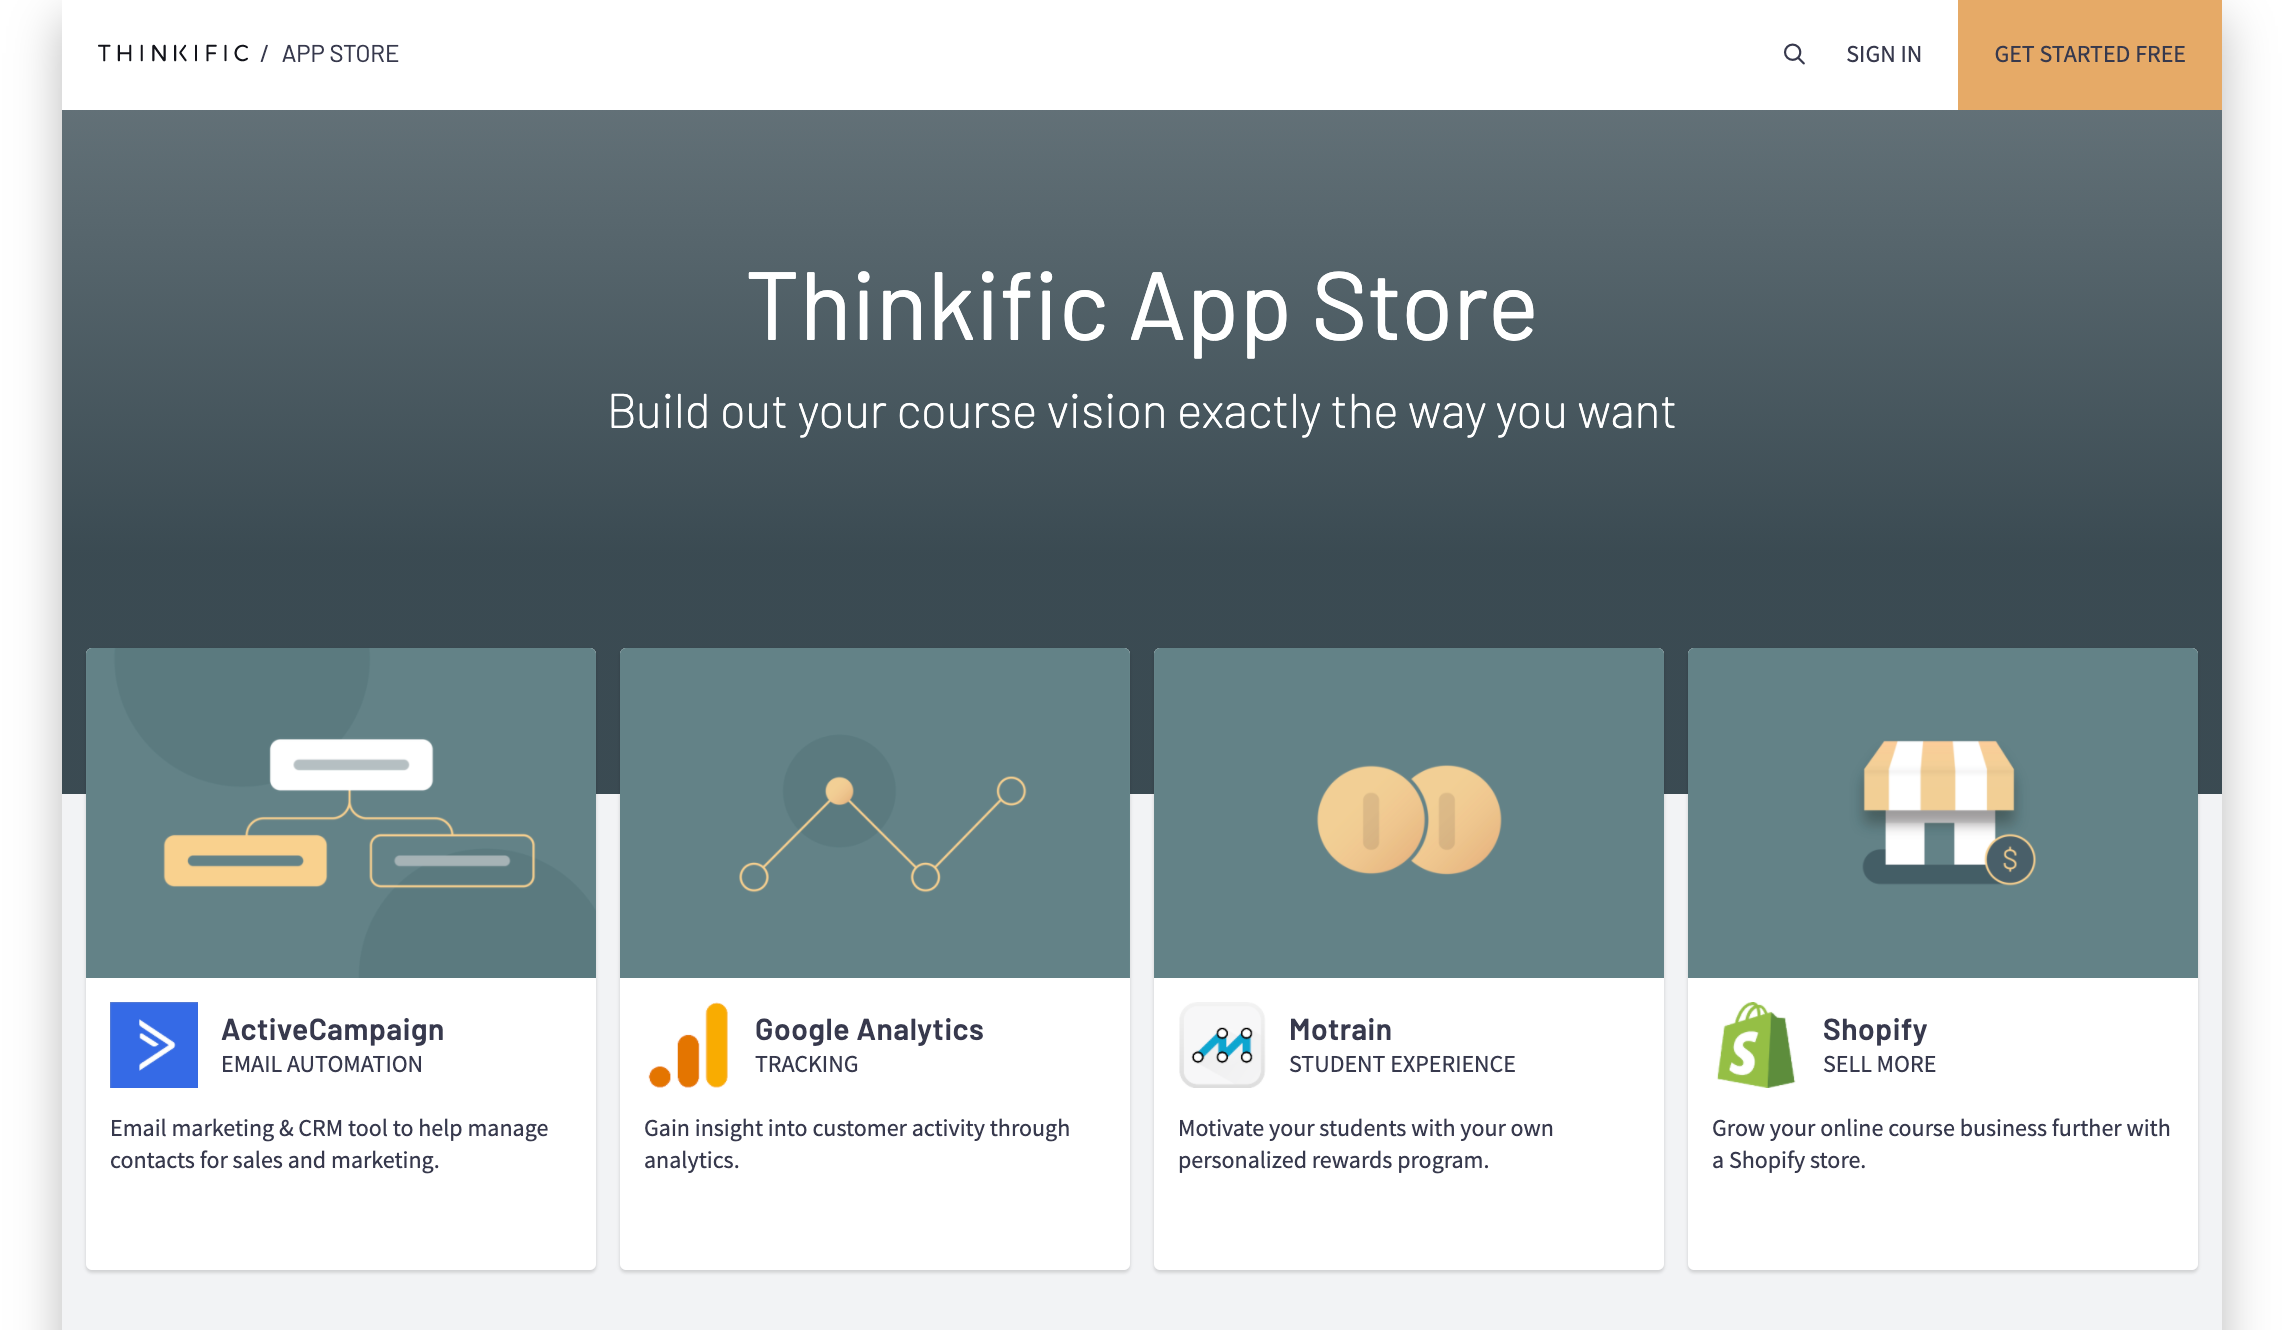 Now with the launch of the Thinkific App Store,  you can educate your customers, sell courses or engage your audience with value-added content exactly the way you want.